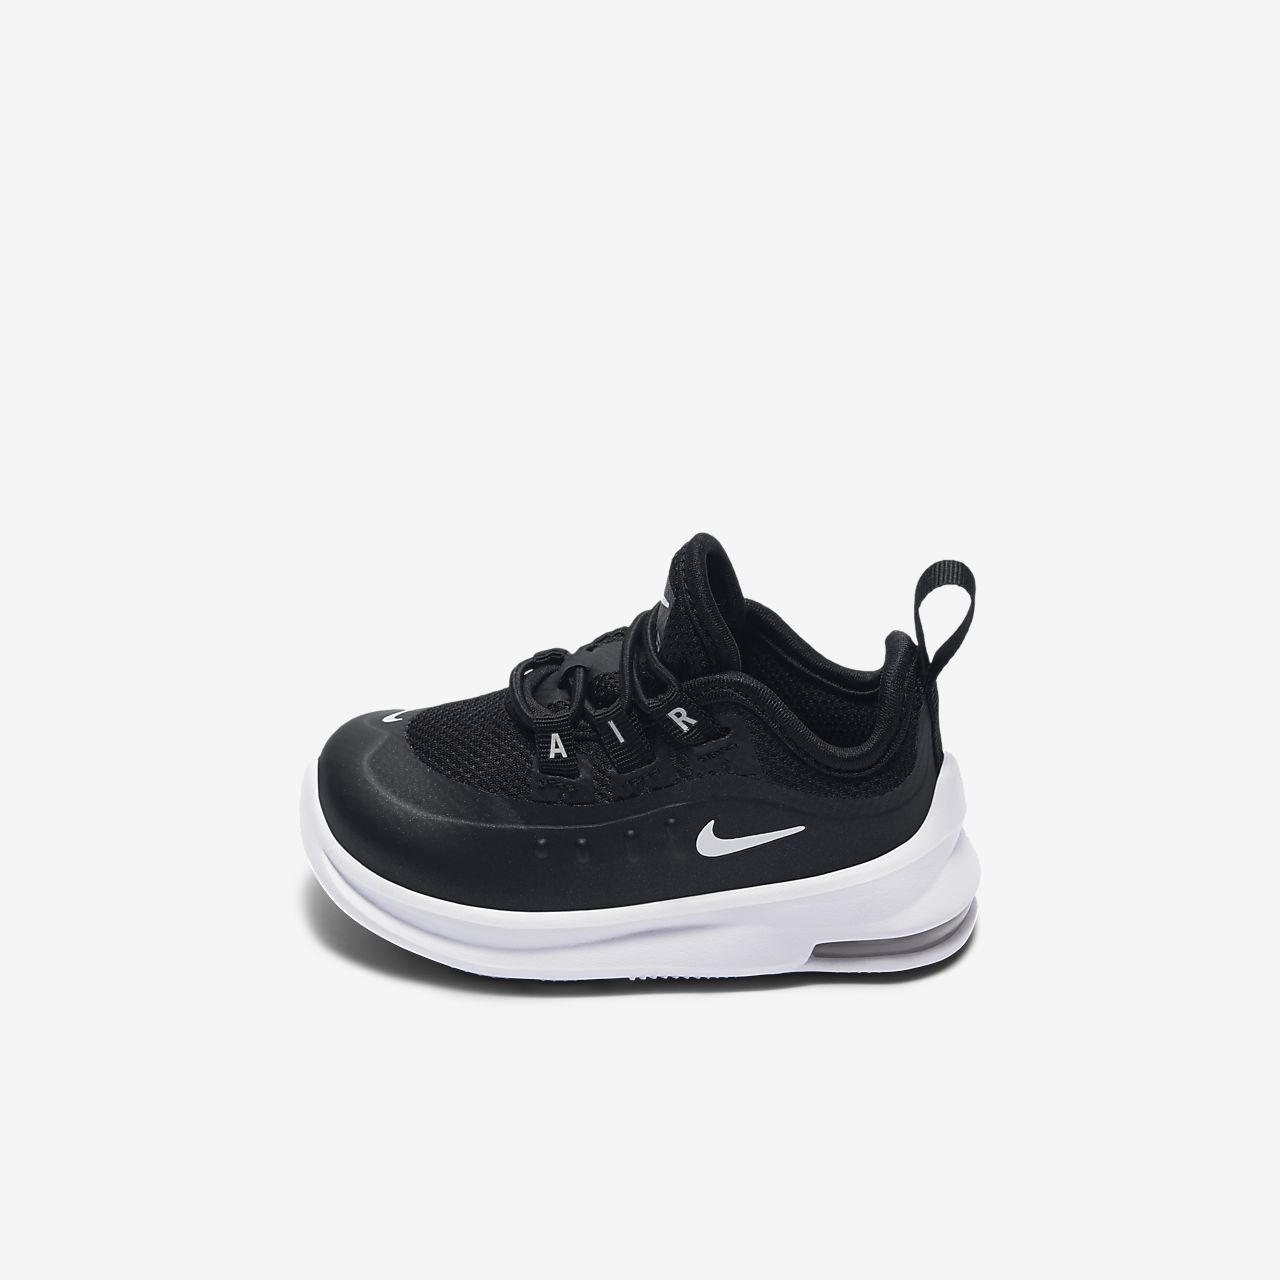 in stock ab7eb 3c331 ... Nike Air Max Axis Baby  amp  Toddler Shoe